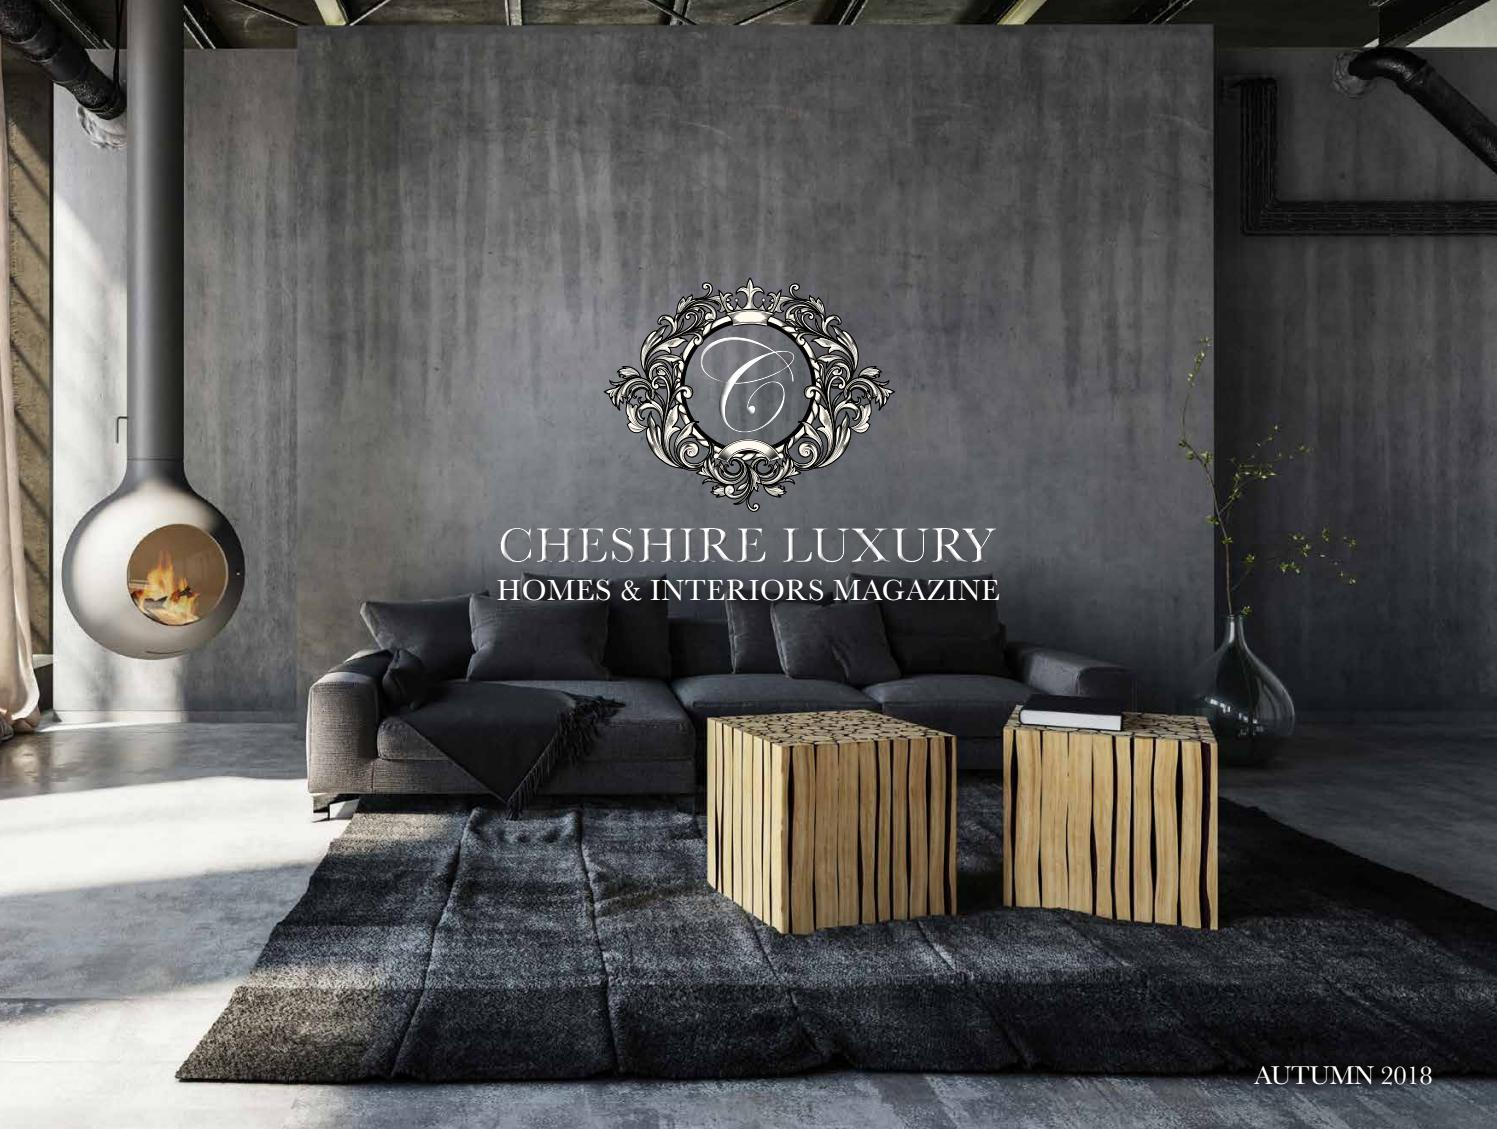 Bagno Design Bradford Cheshire Luxury Homes Interiors Magazine Autumn 2018 By Luxury